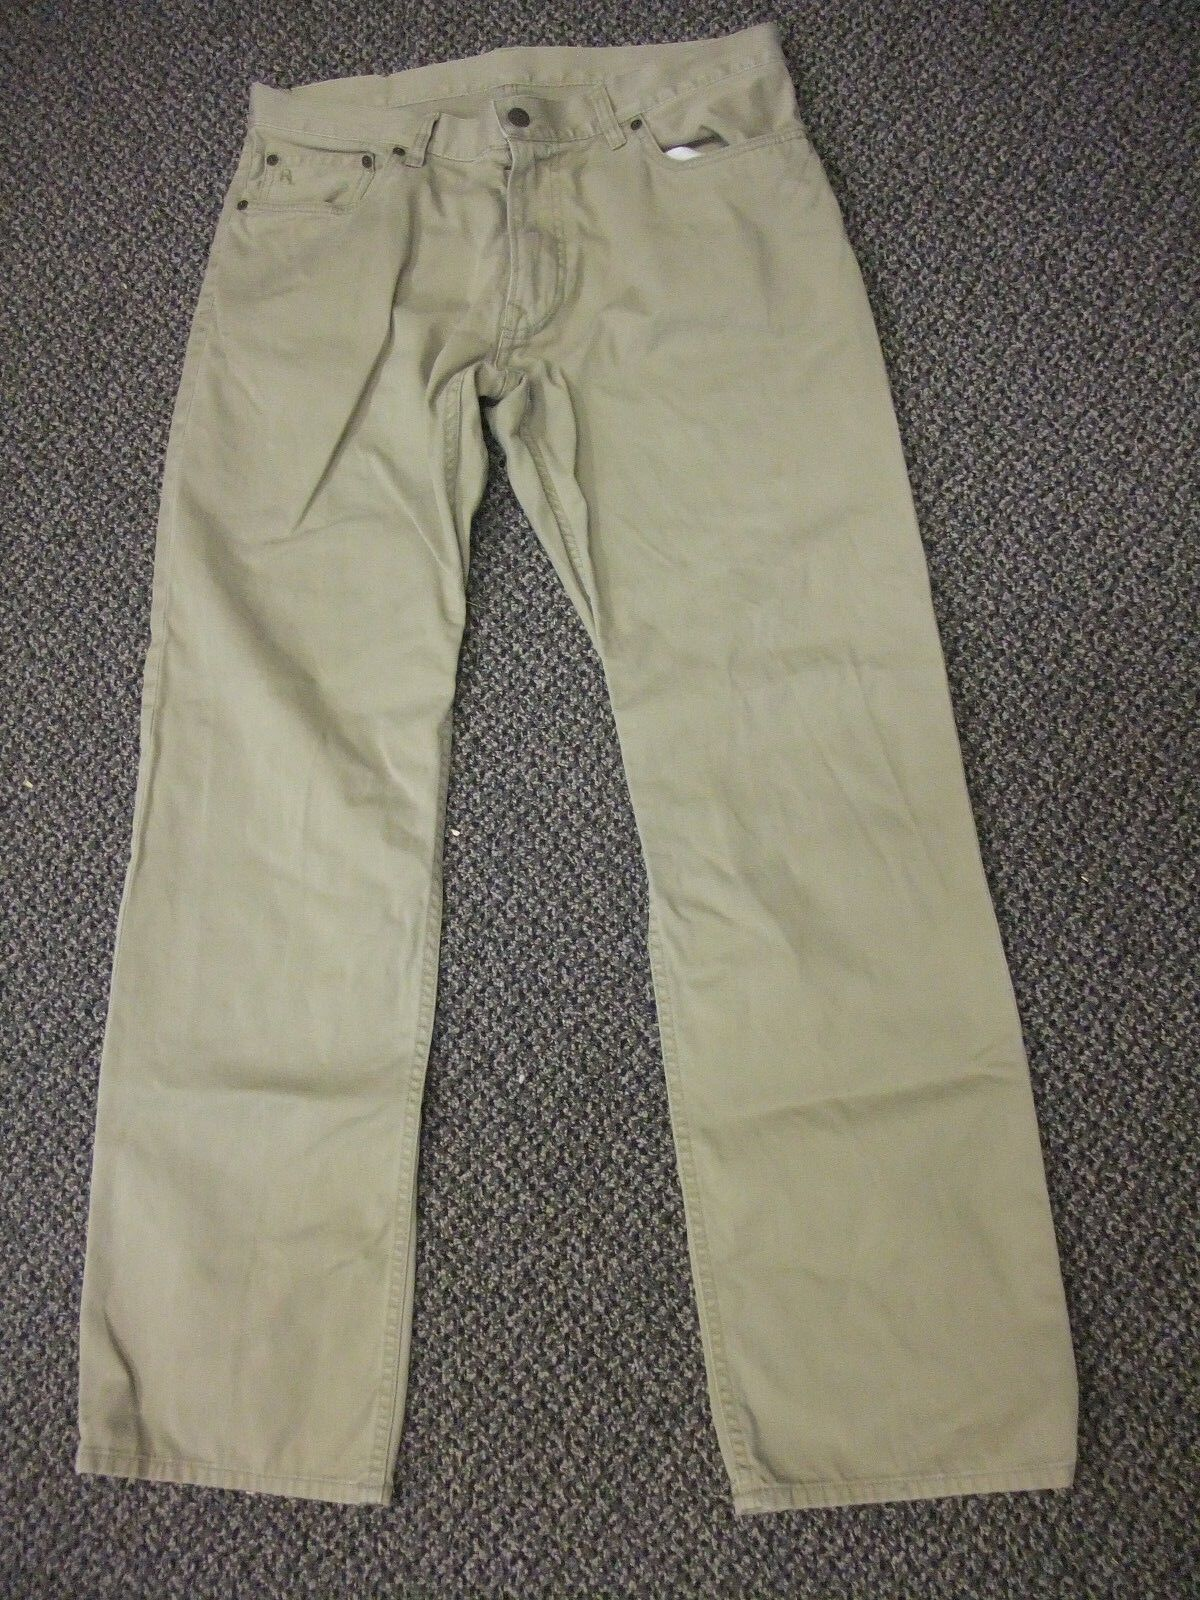 Vintage Men's Tan Pants Size 34 32